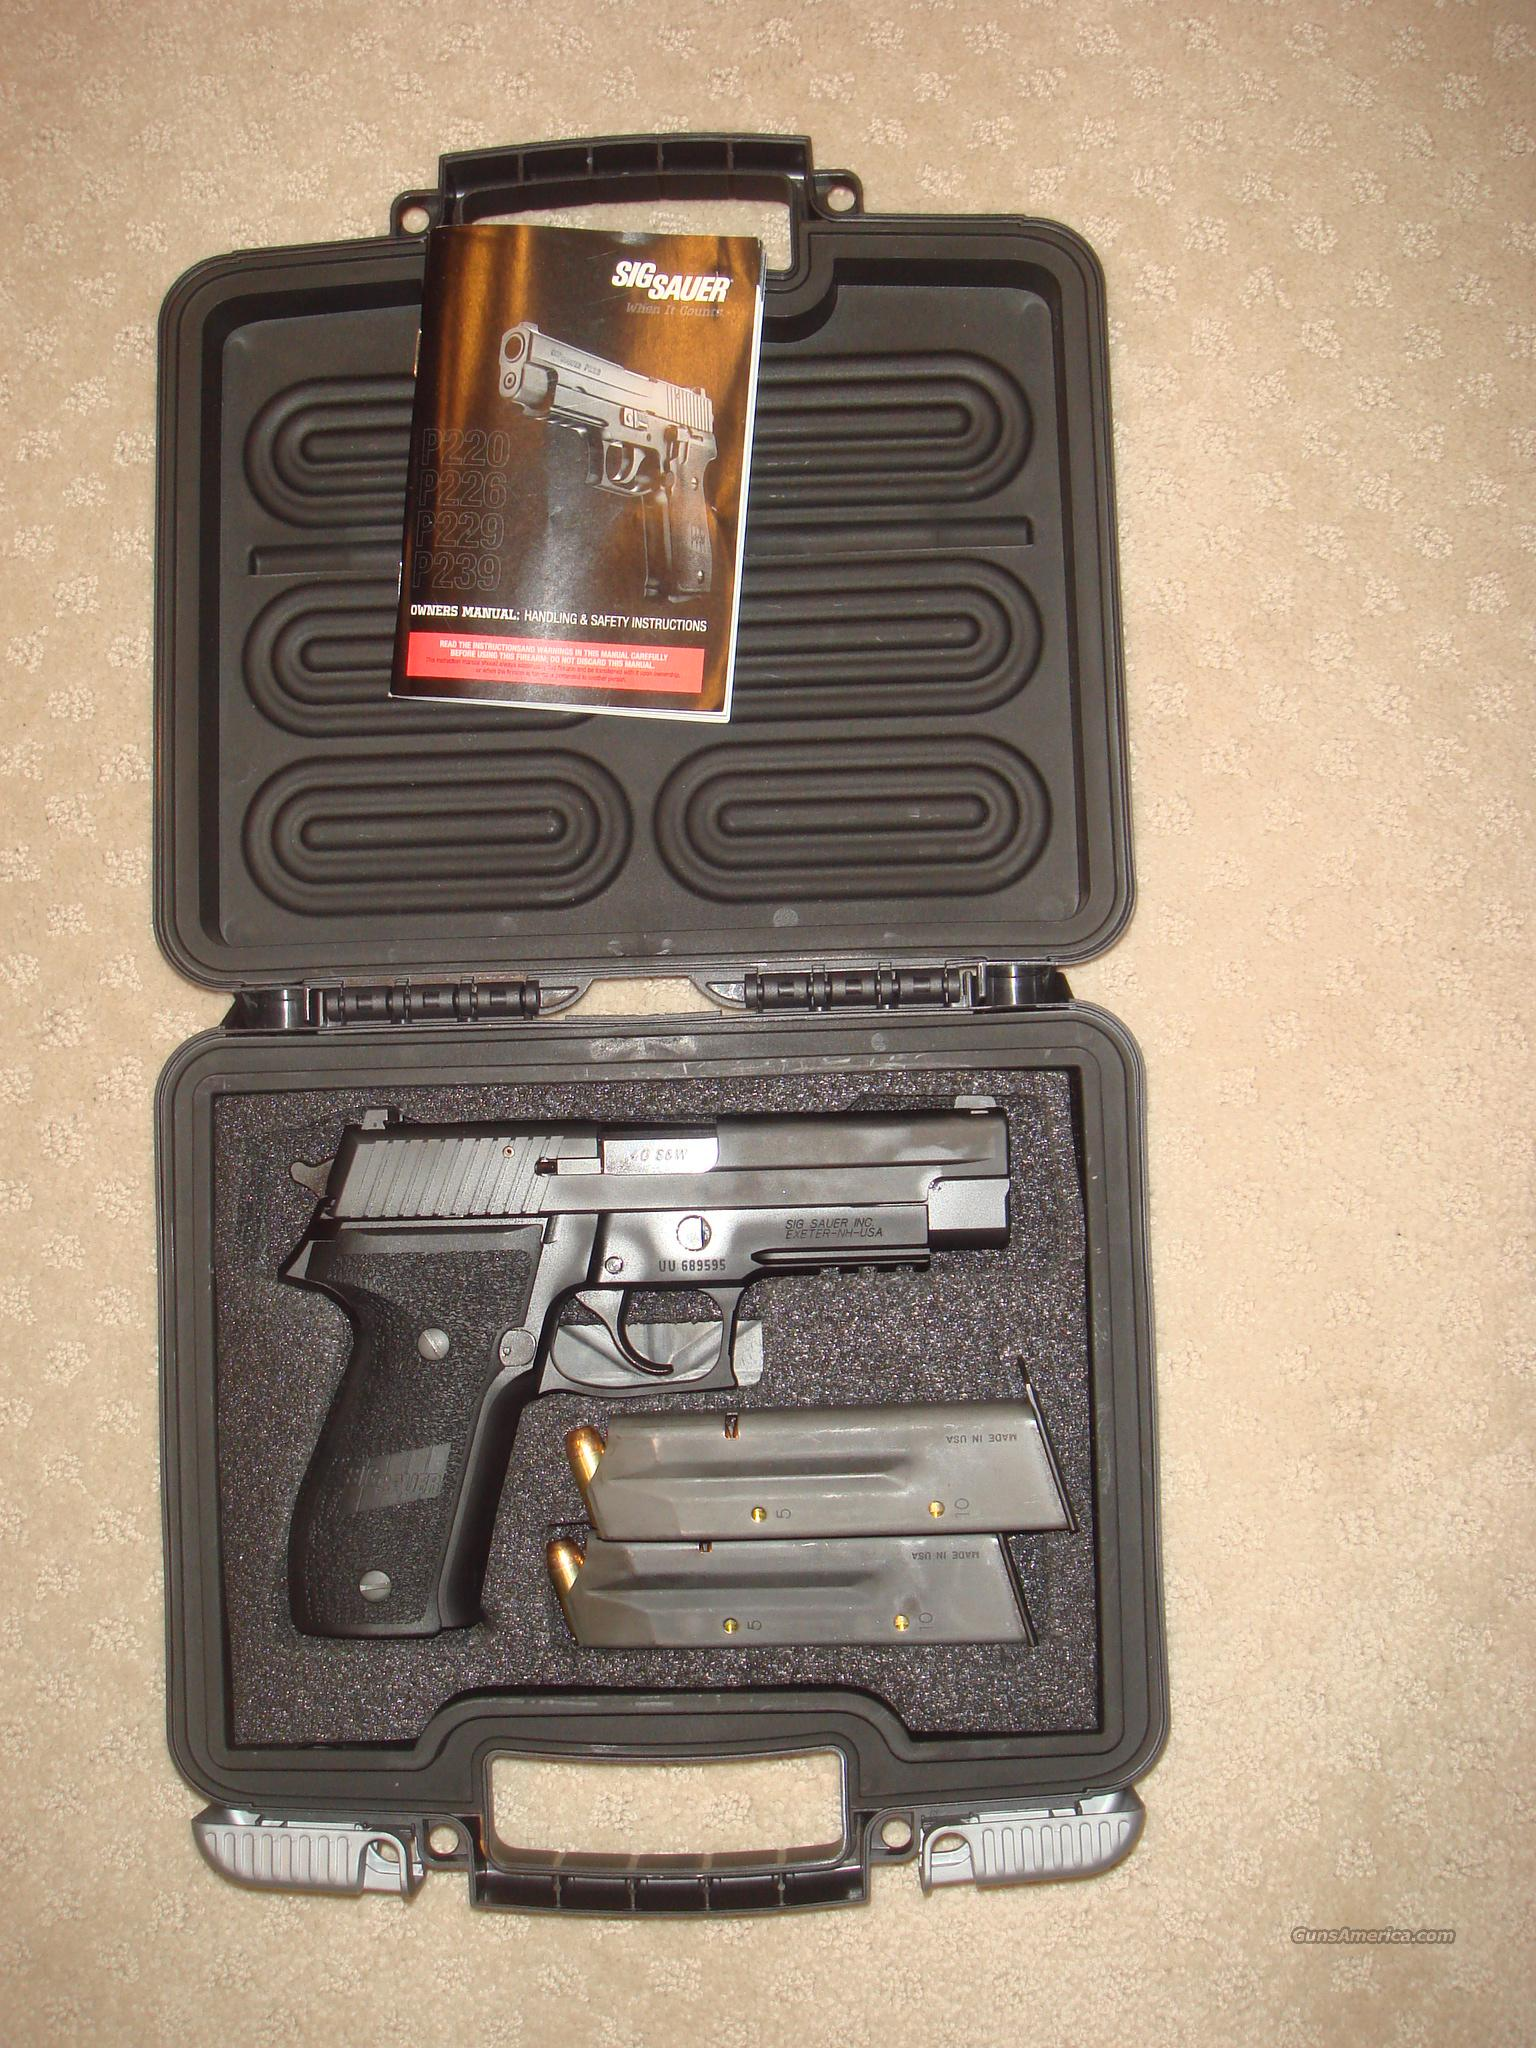 Sig Sauer P226 near new 40 S/W  Guns > Pistols > Sig - Sauer/Sigarms Pistols > P226